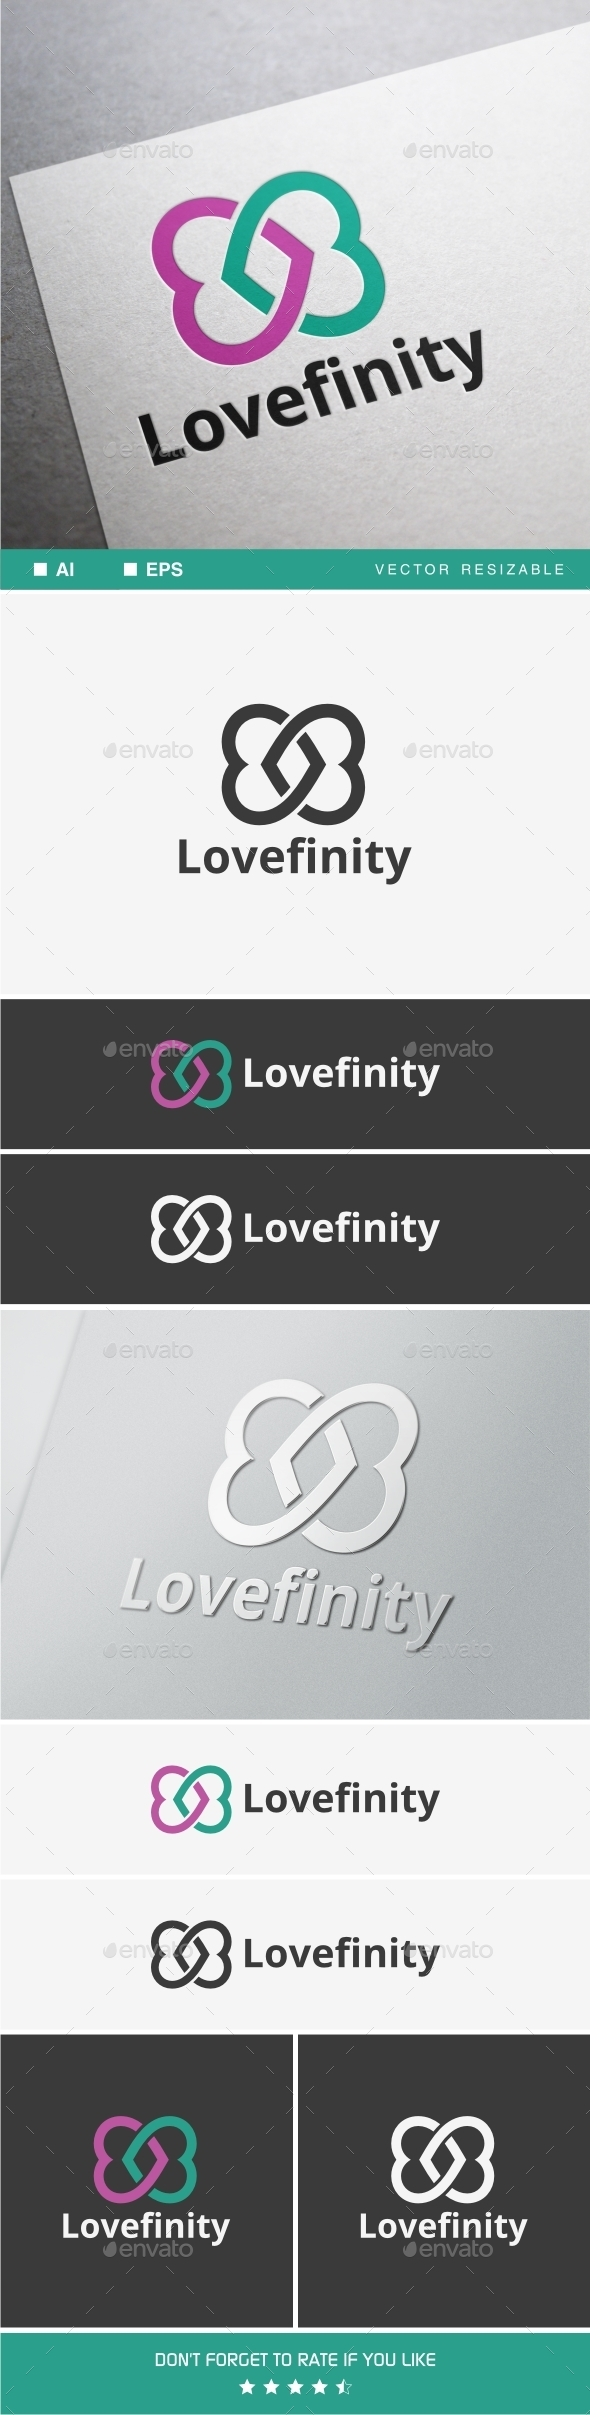 Lovefinity - Objects Logo Templates